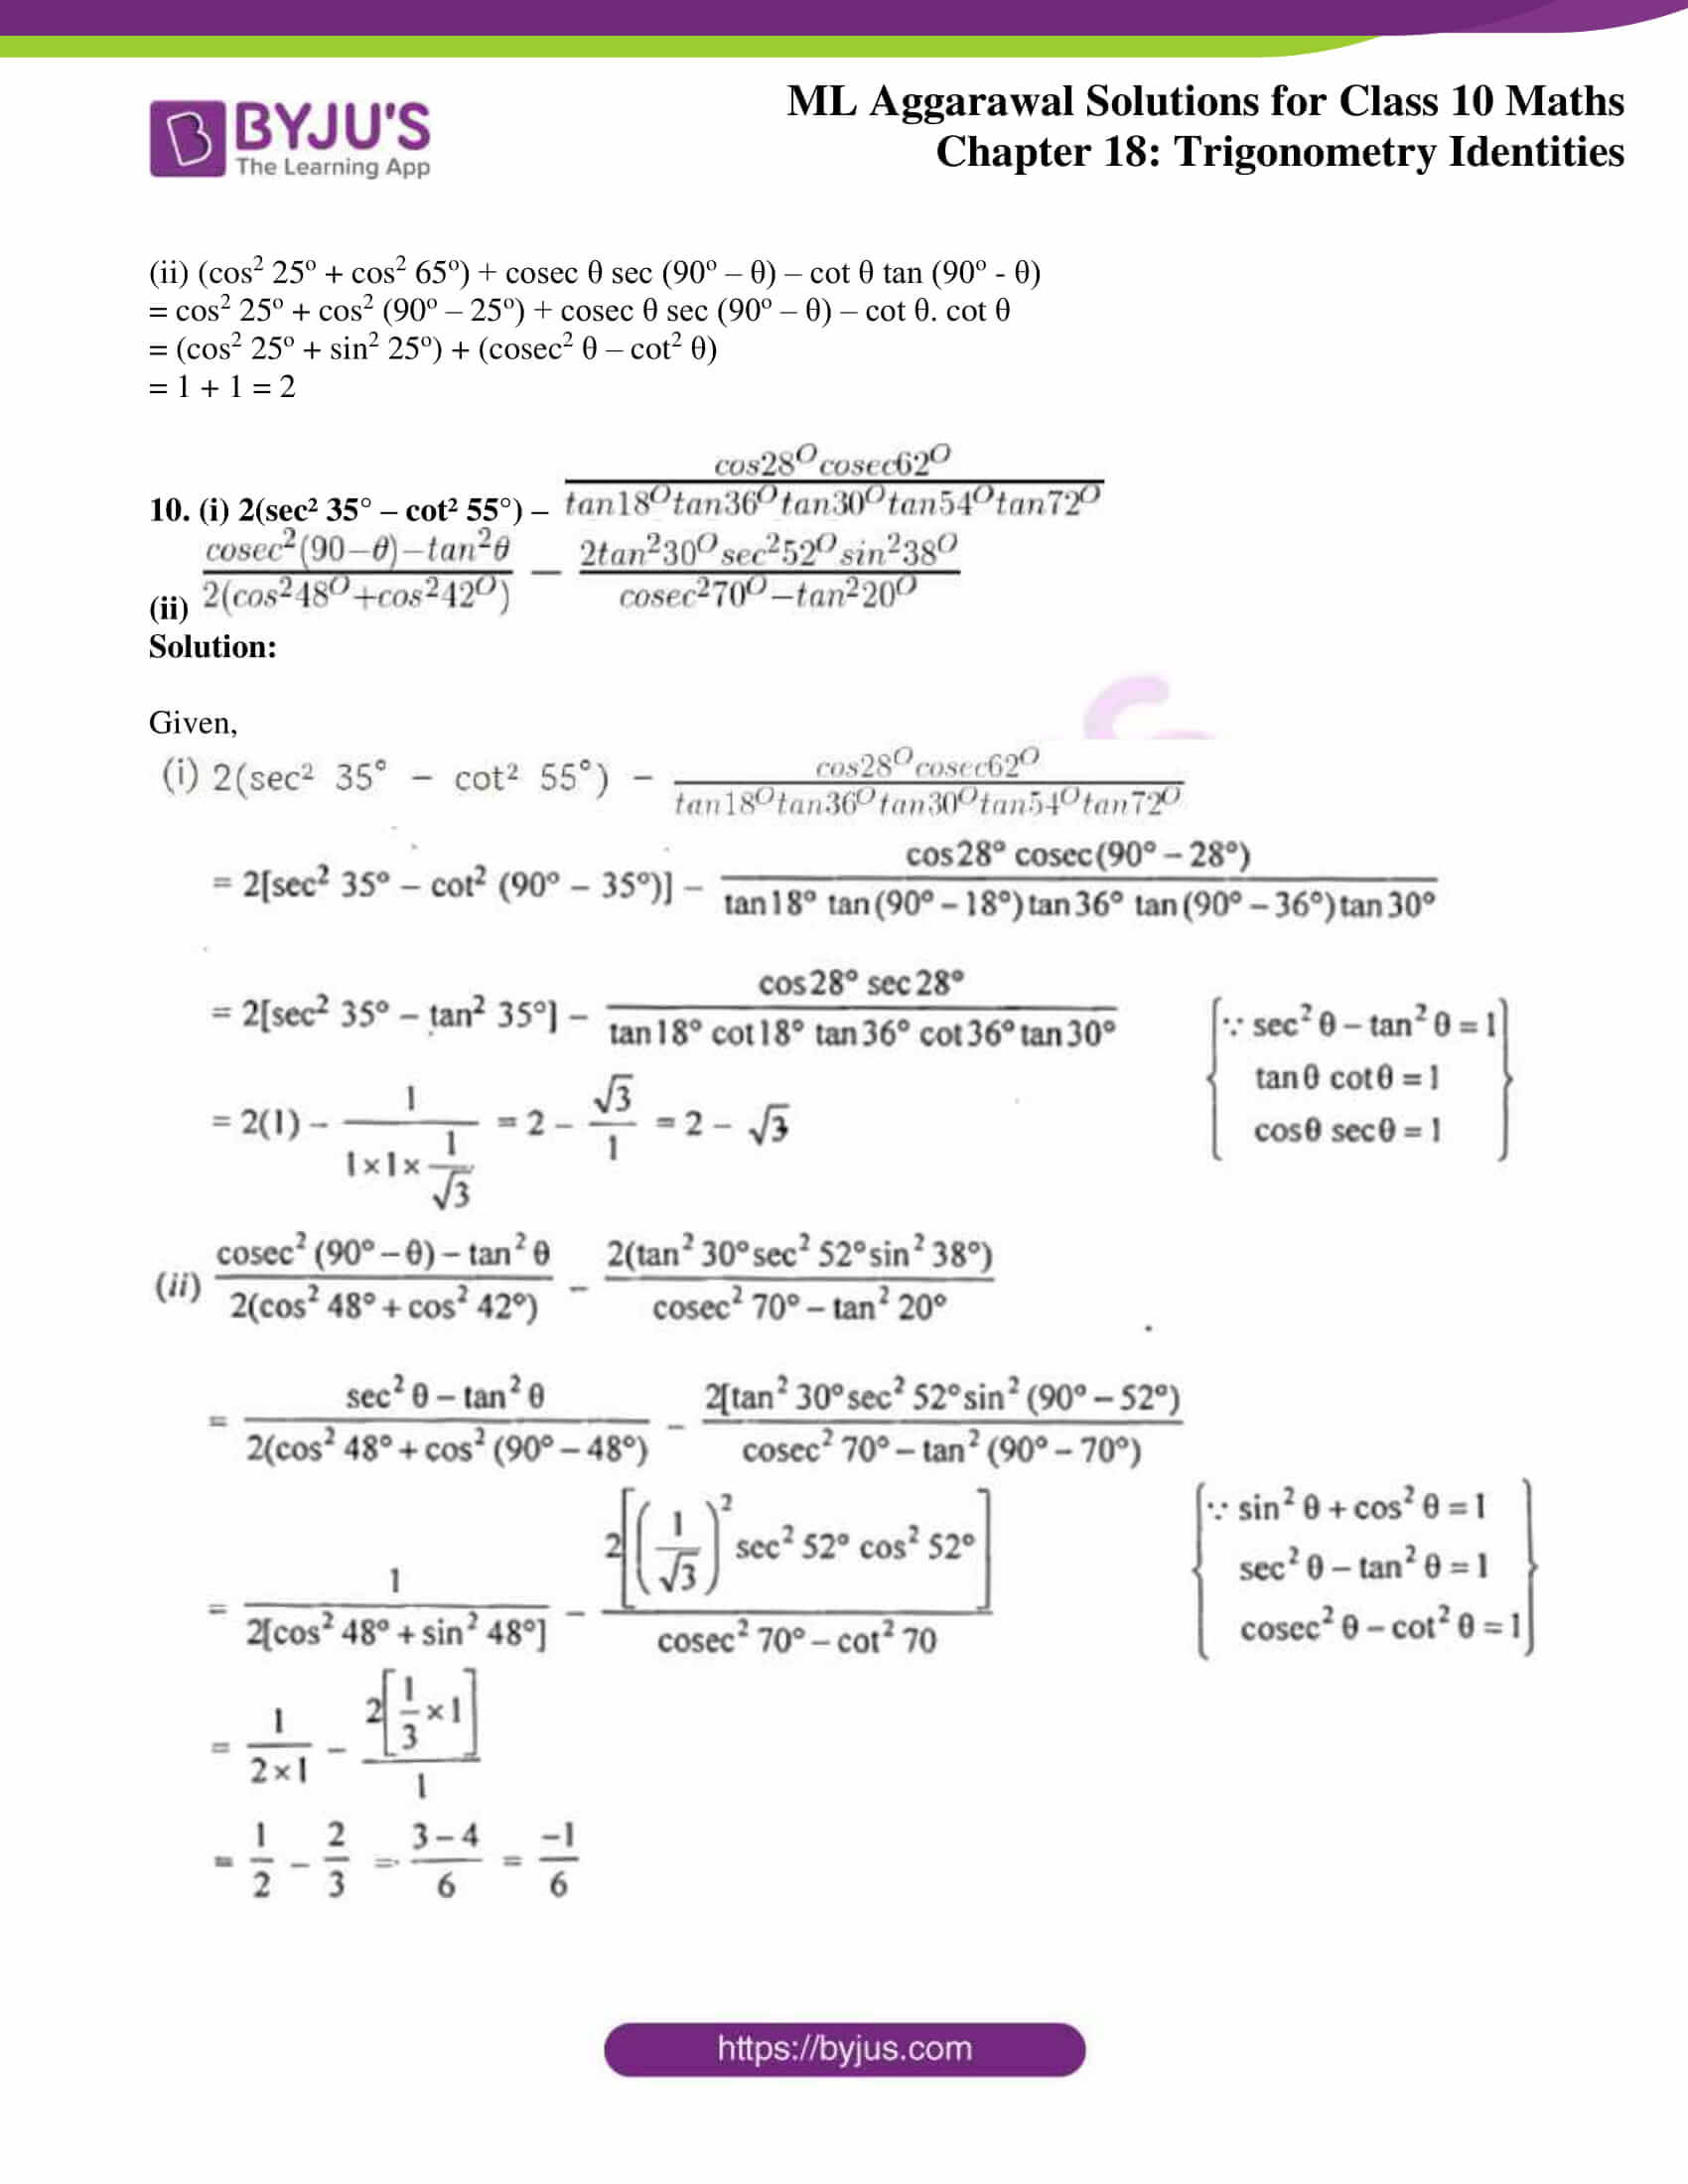 ml aggarwal solutions for class 10 maths chapter 18 05